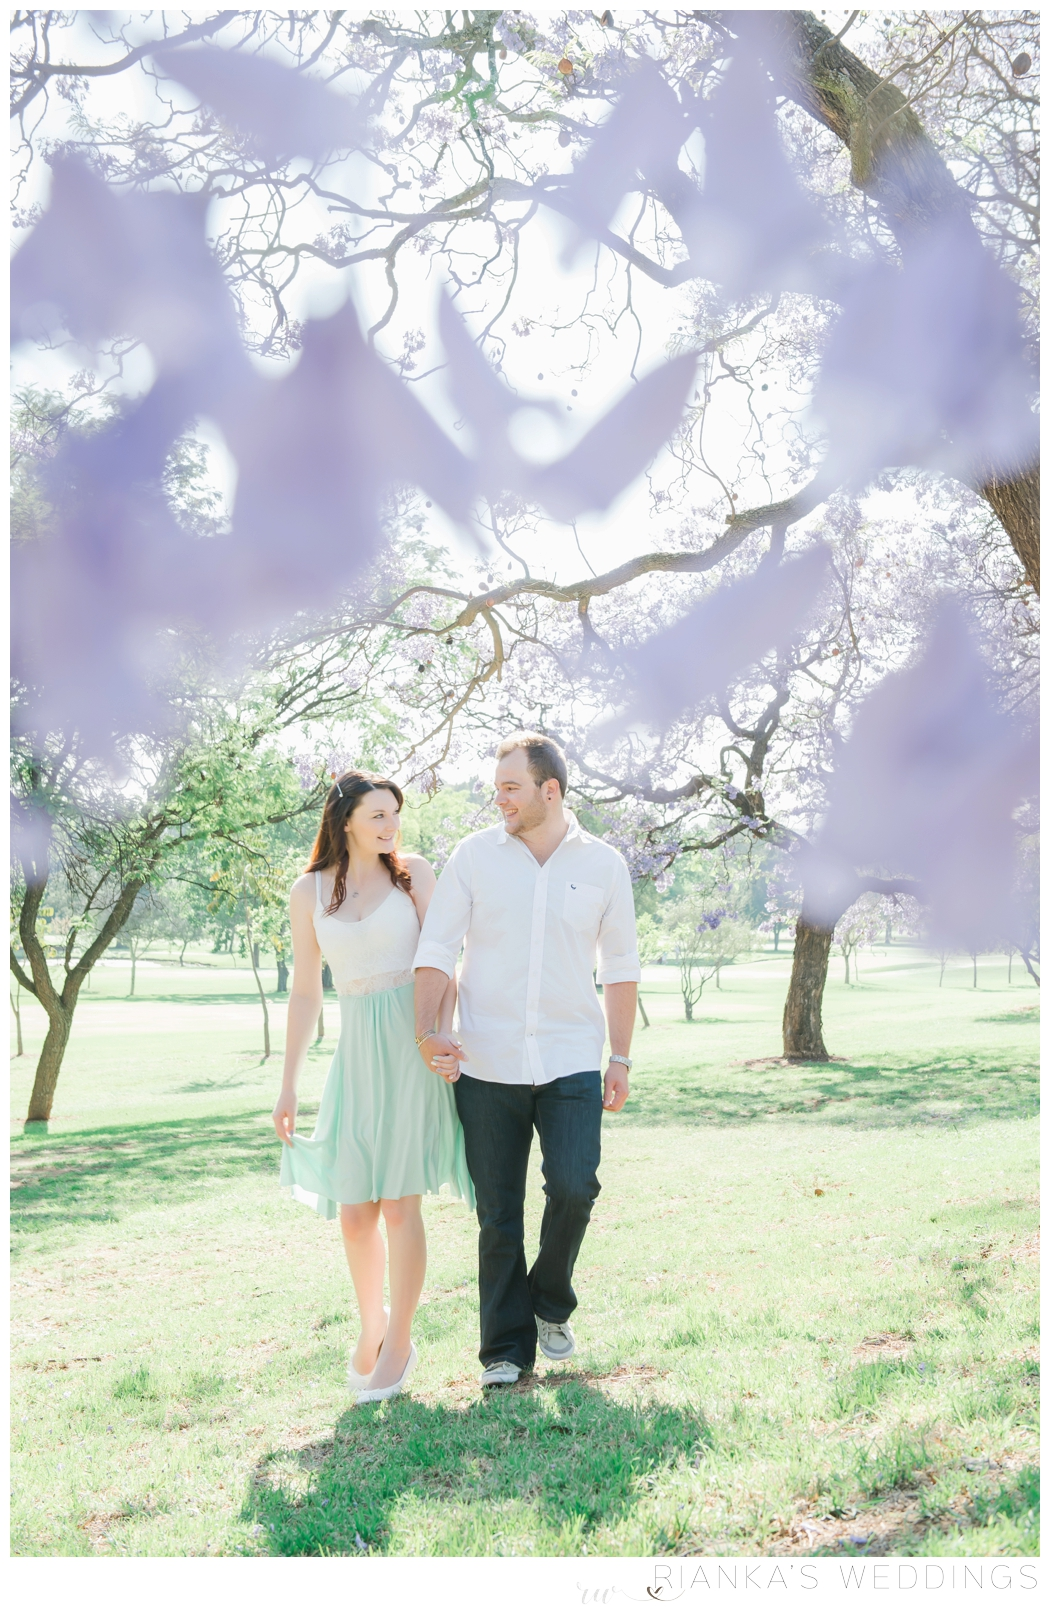 riankas-wedding-photography-pretoria-engagement-shoot-00020